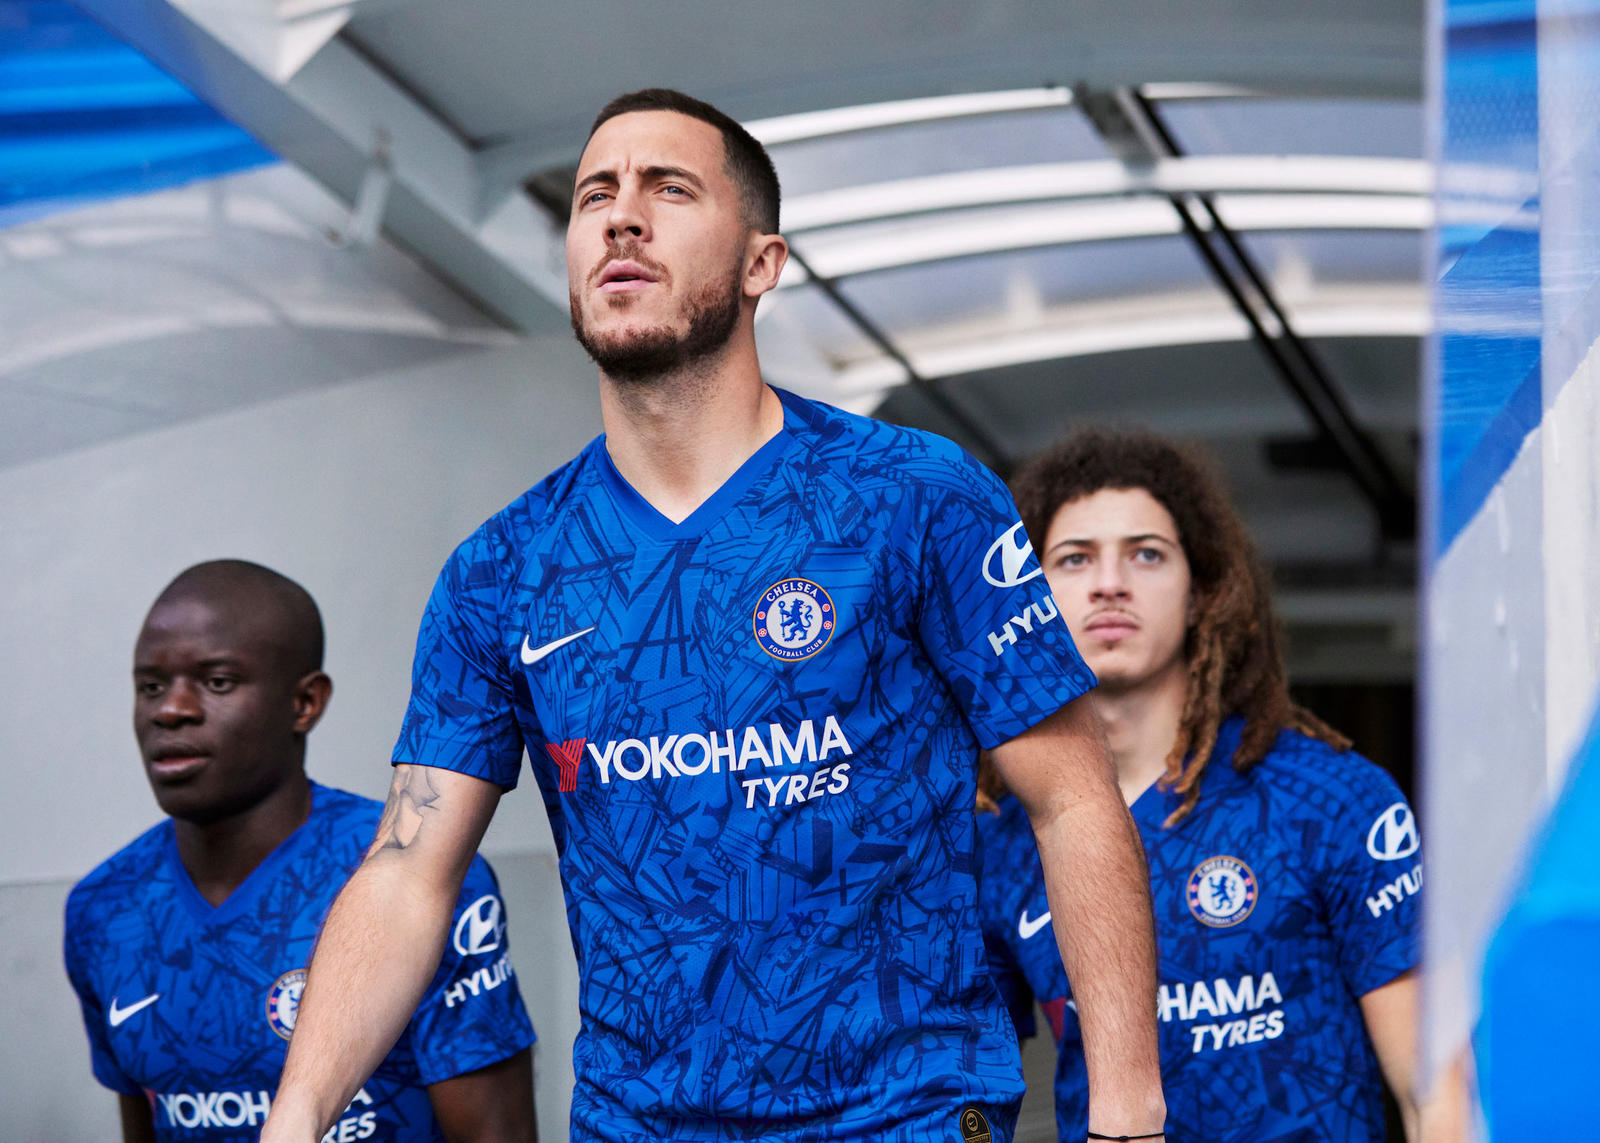 cheaper 42f5c a9c7e Chelsea FC Home Kit 2019-20 - Nike News